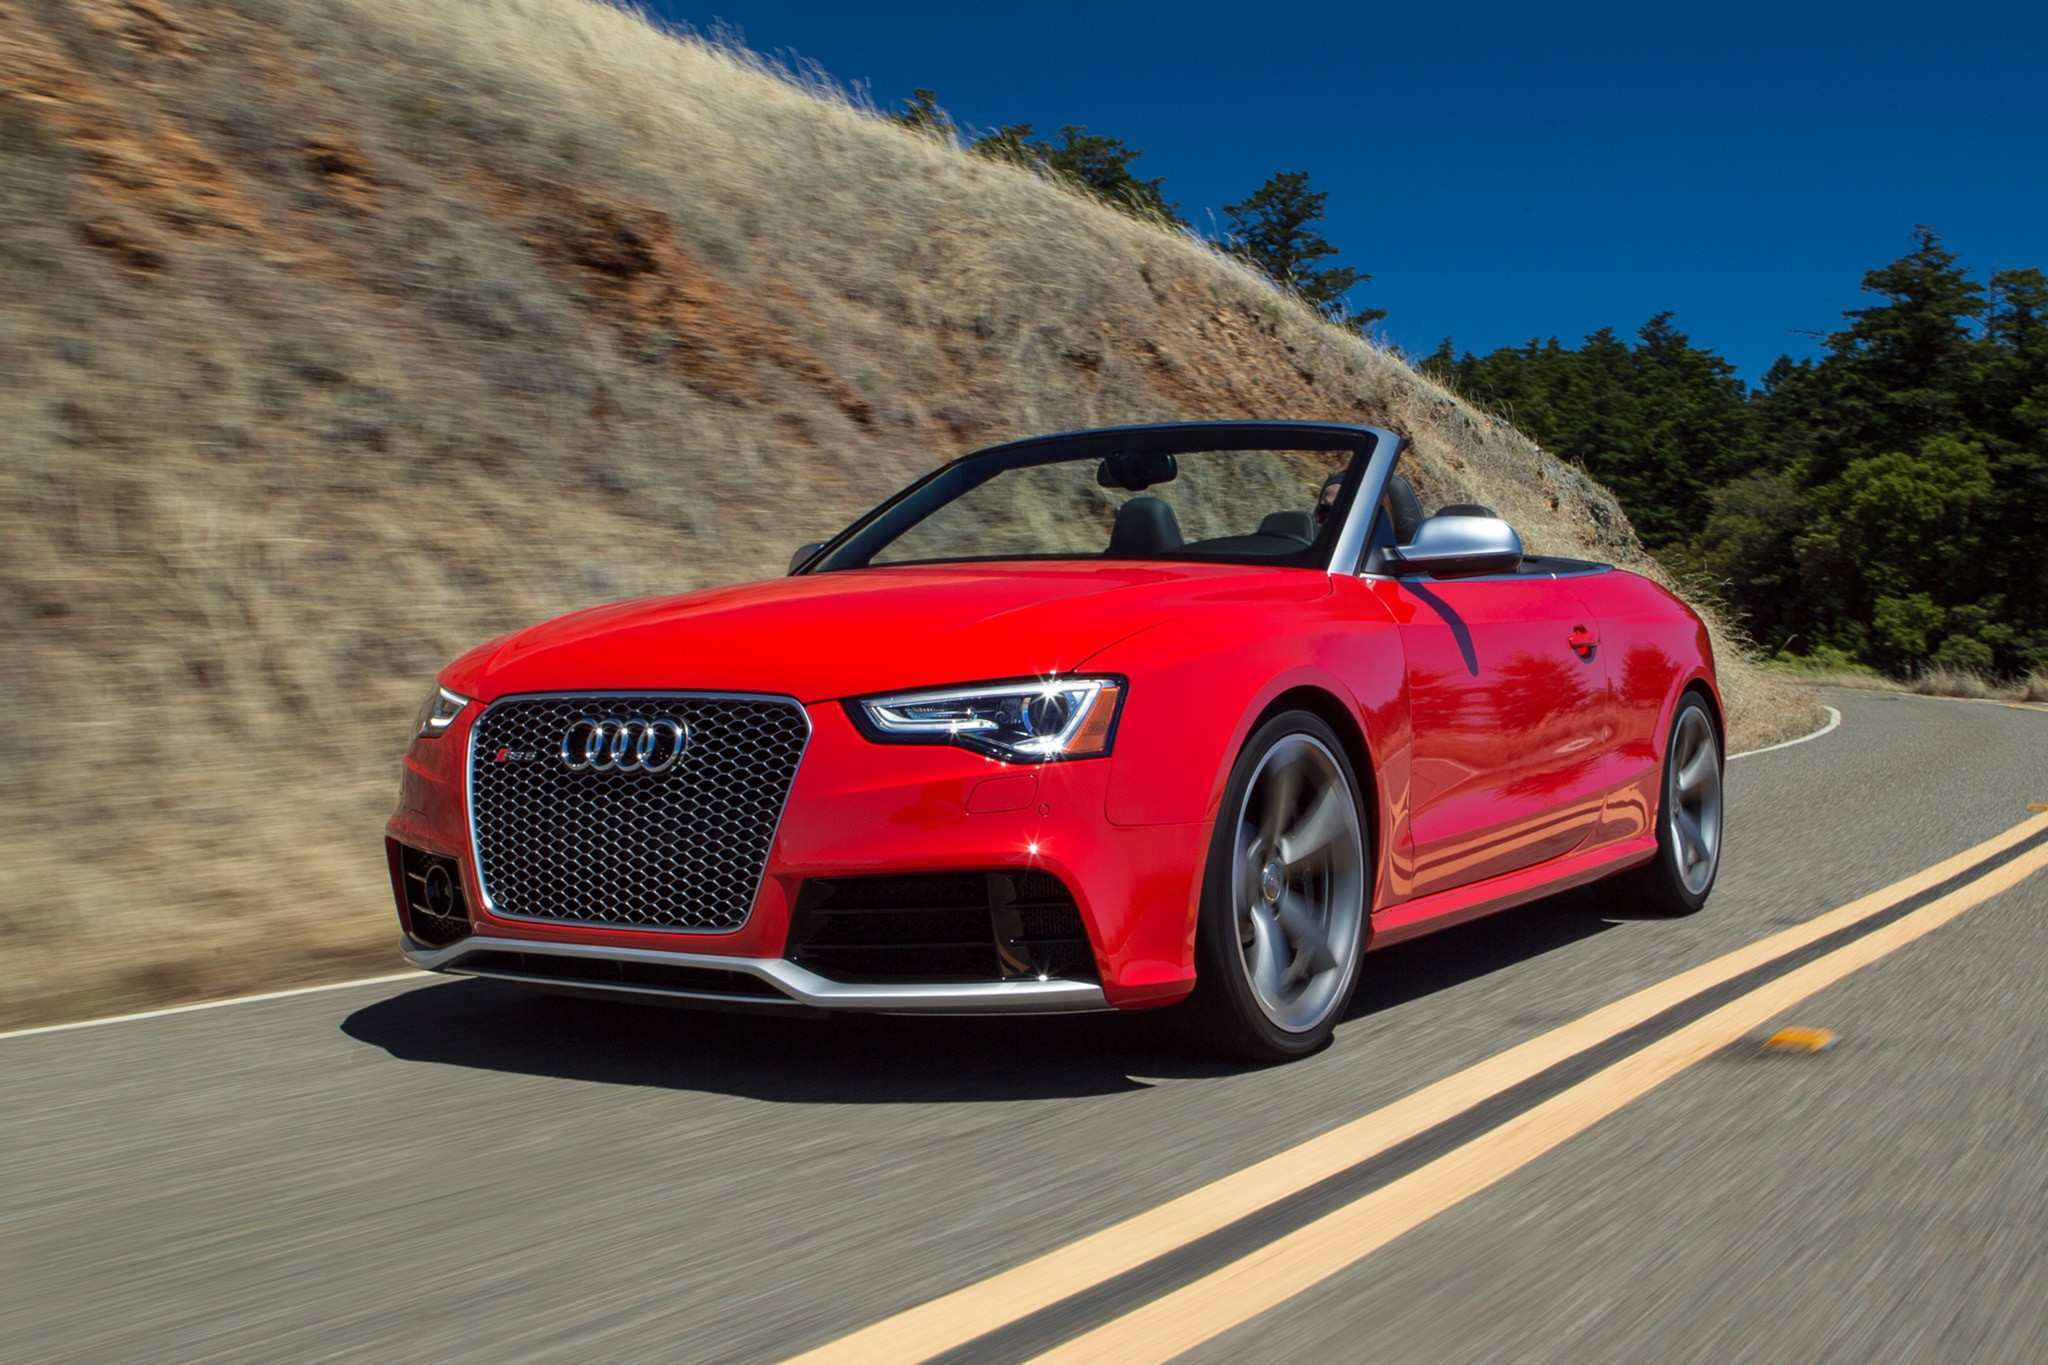 87 Great 2020 Audi S5 Cabriolet Rumors for 2020 Audi S5 Cabriolet